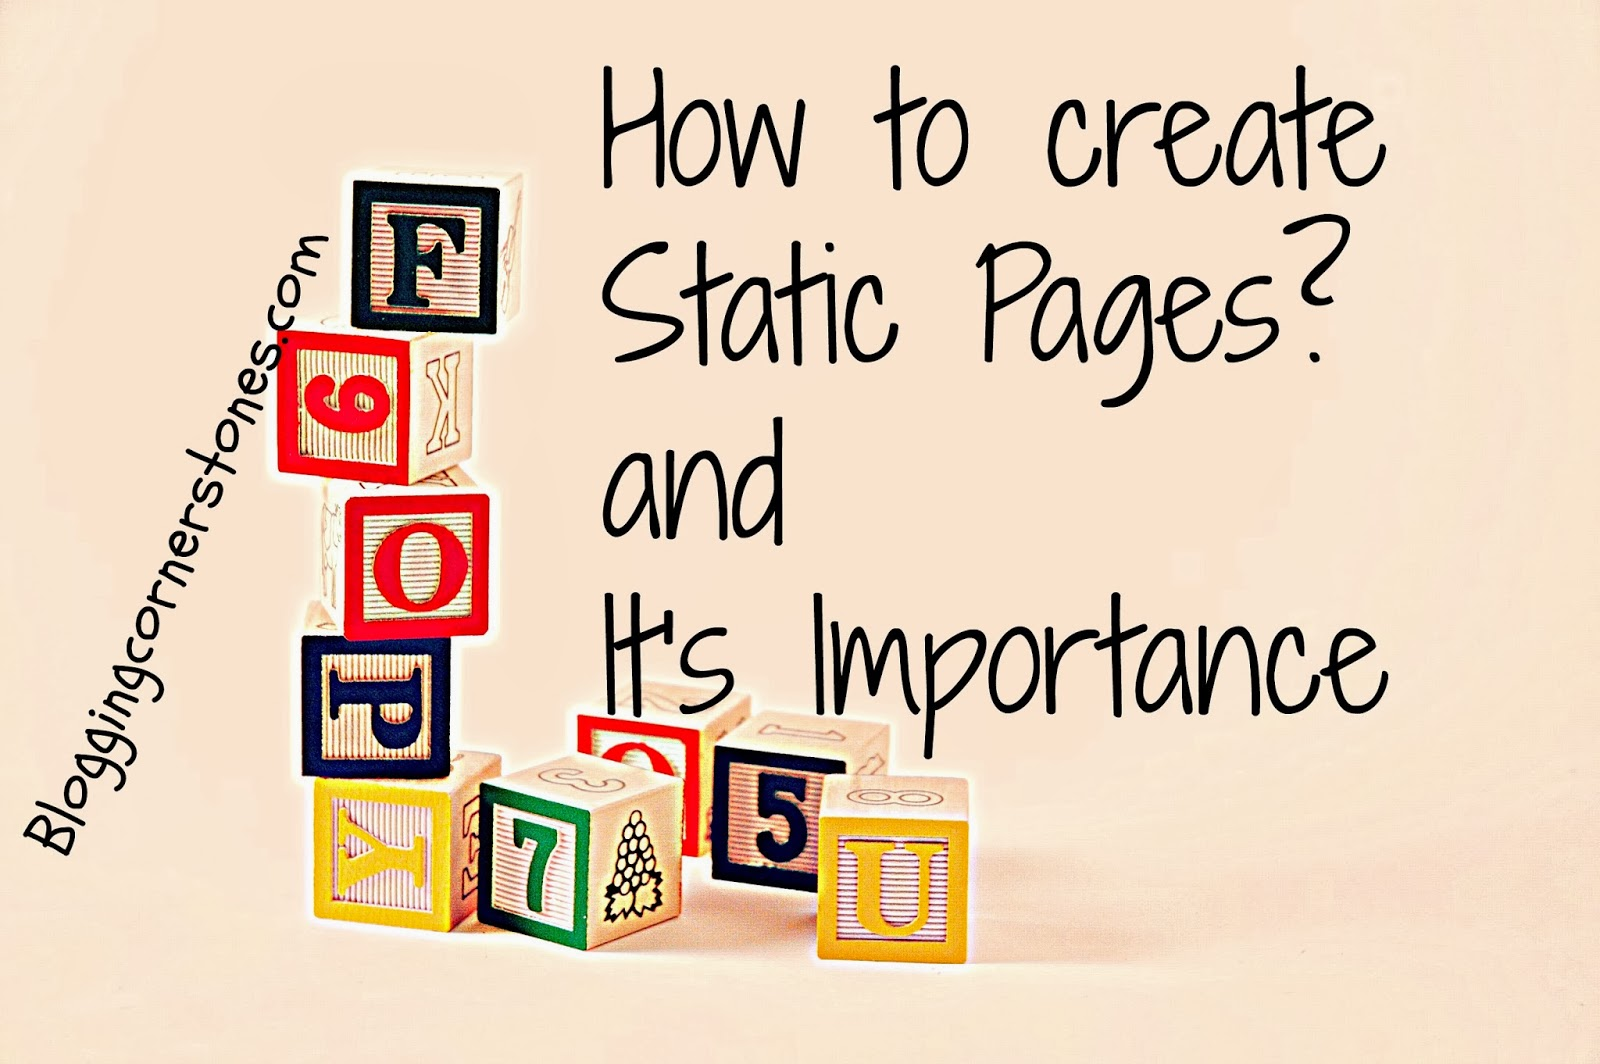 How to create Static pages in Blogger